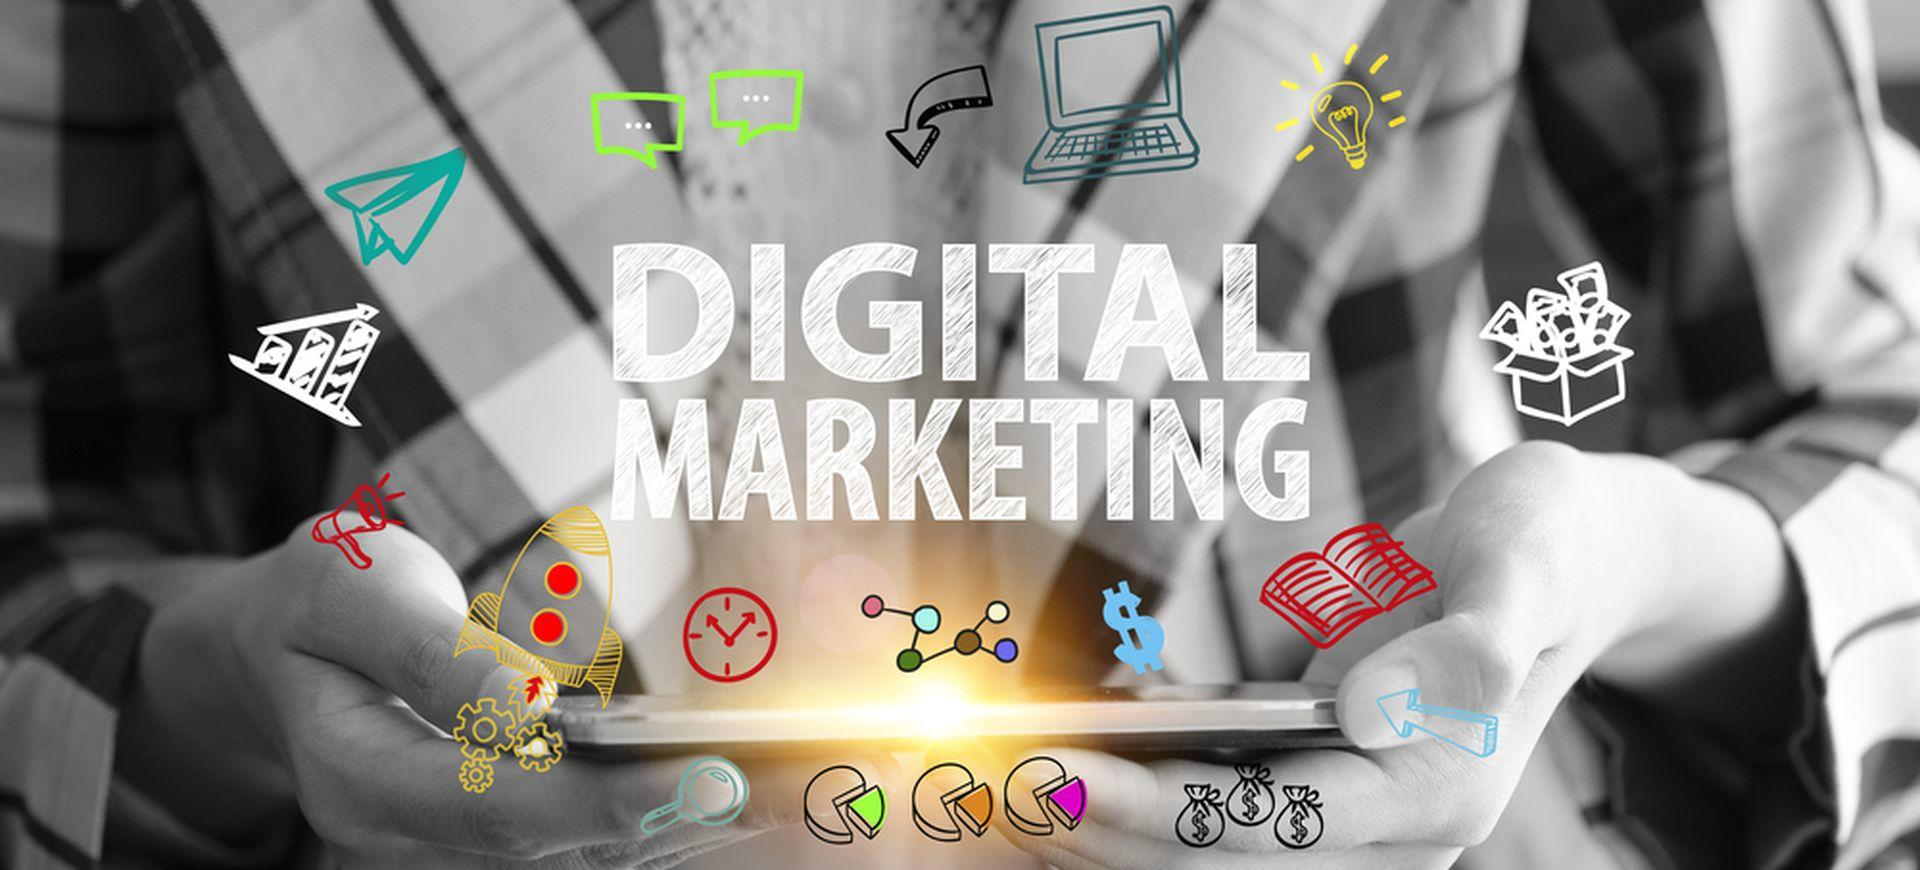 Curso Marketing Digital Uberlândia